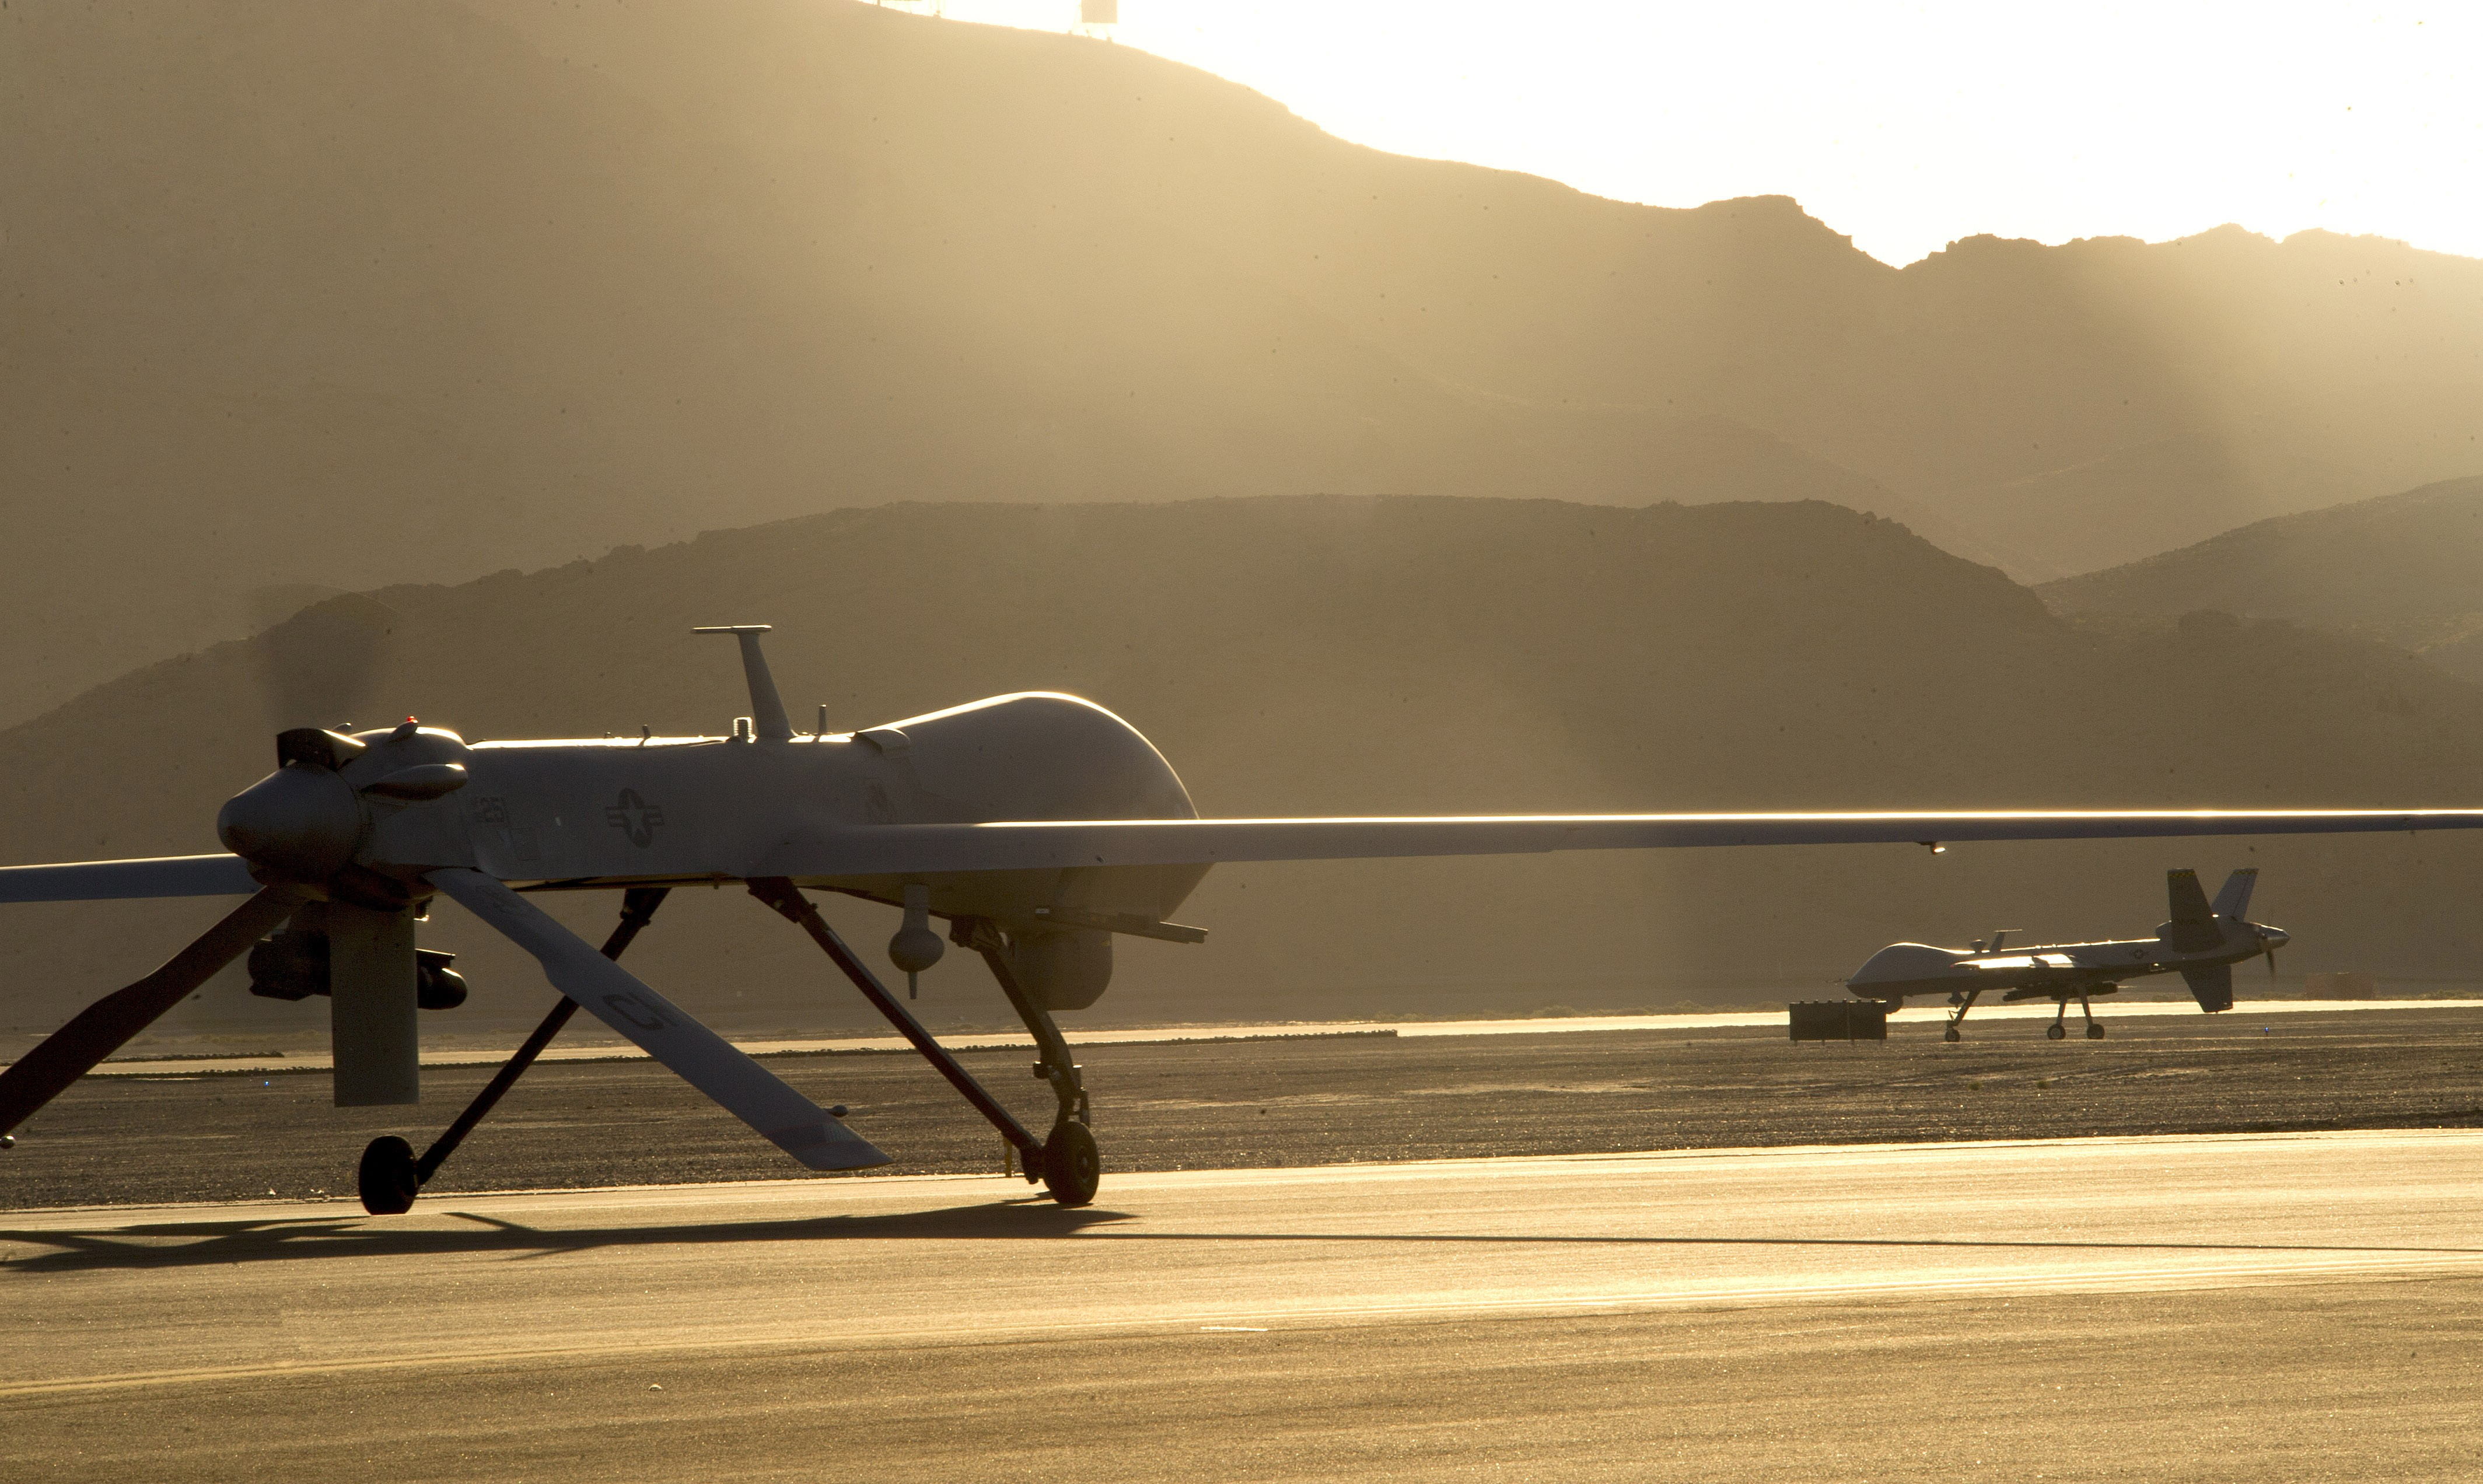 mq 1b predator drone with Mq 9 Reaper Mq 9 Drone  Bat Usa Army Landing 310 on 4 Keeping Track Of The Drones as well Mq 1c Gray Eagle Predator further General Atomics MQ 1 also Mq 9 Reaper Mq 9 Drone  bat Usa Army Landing 310 likewise Creech Sukhoi.